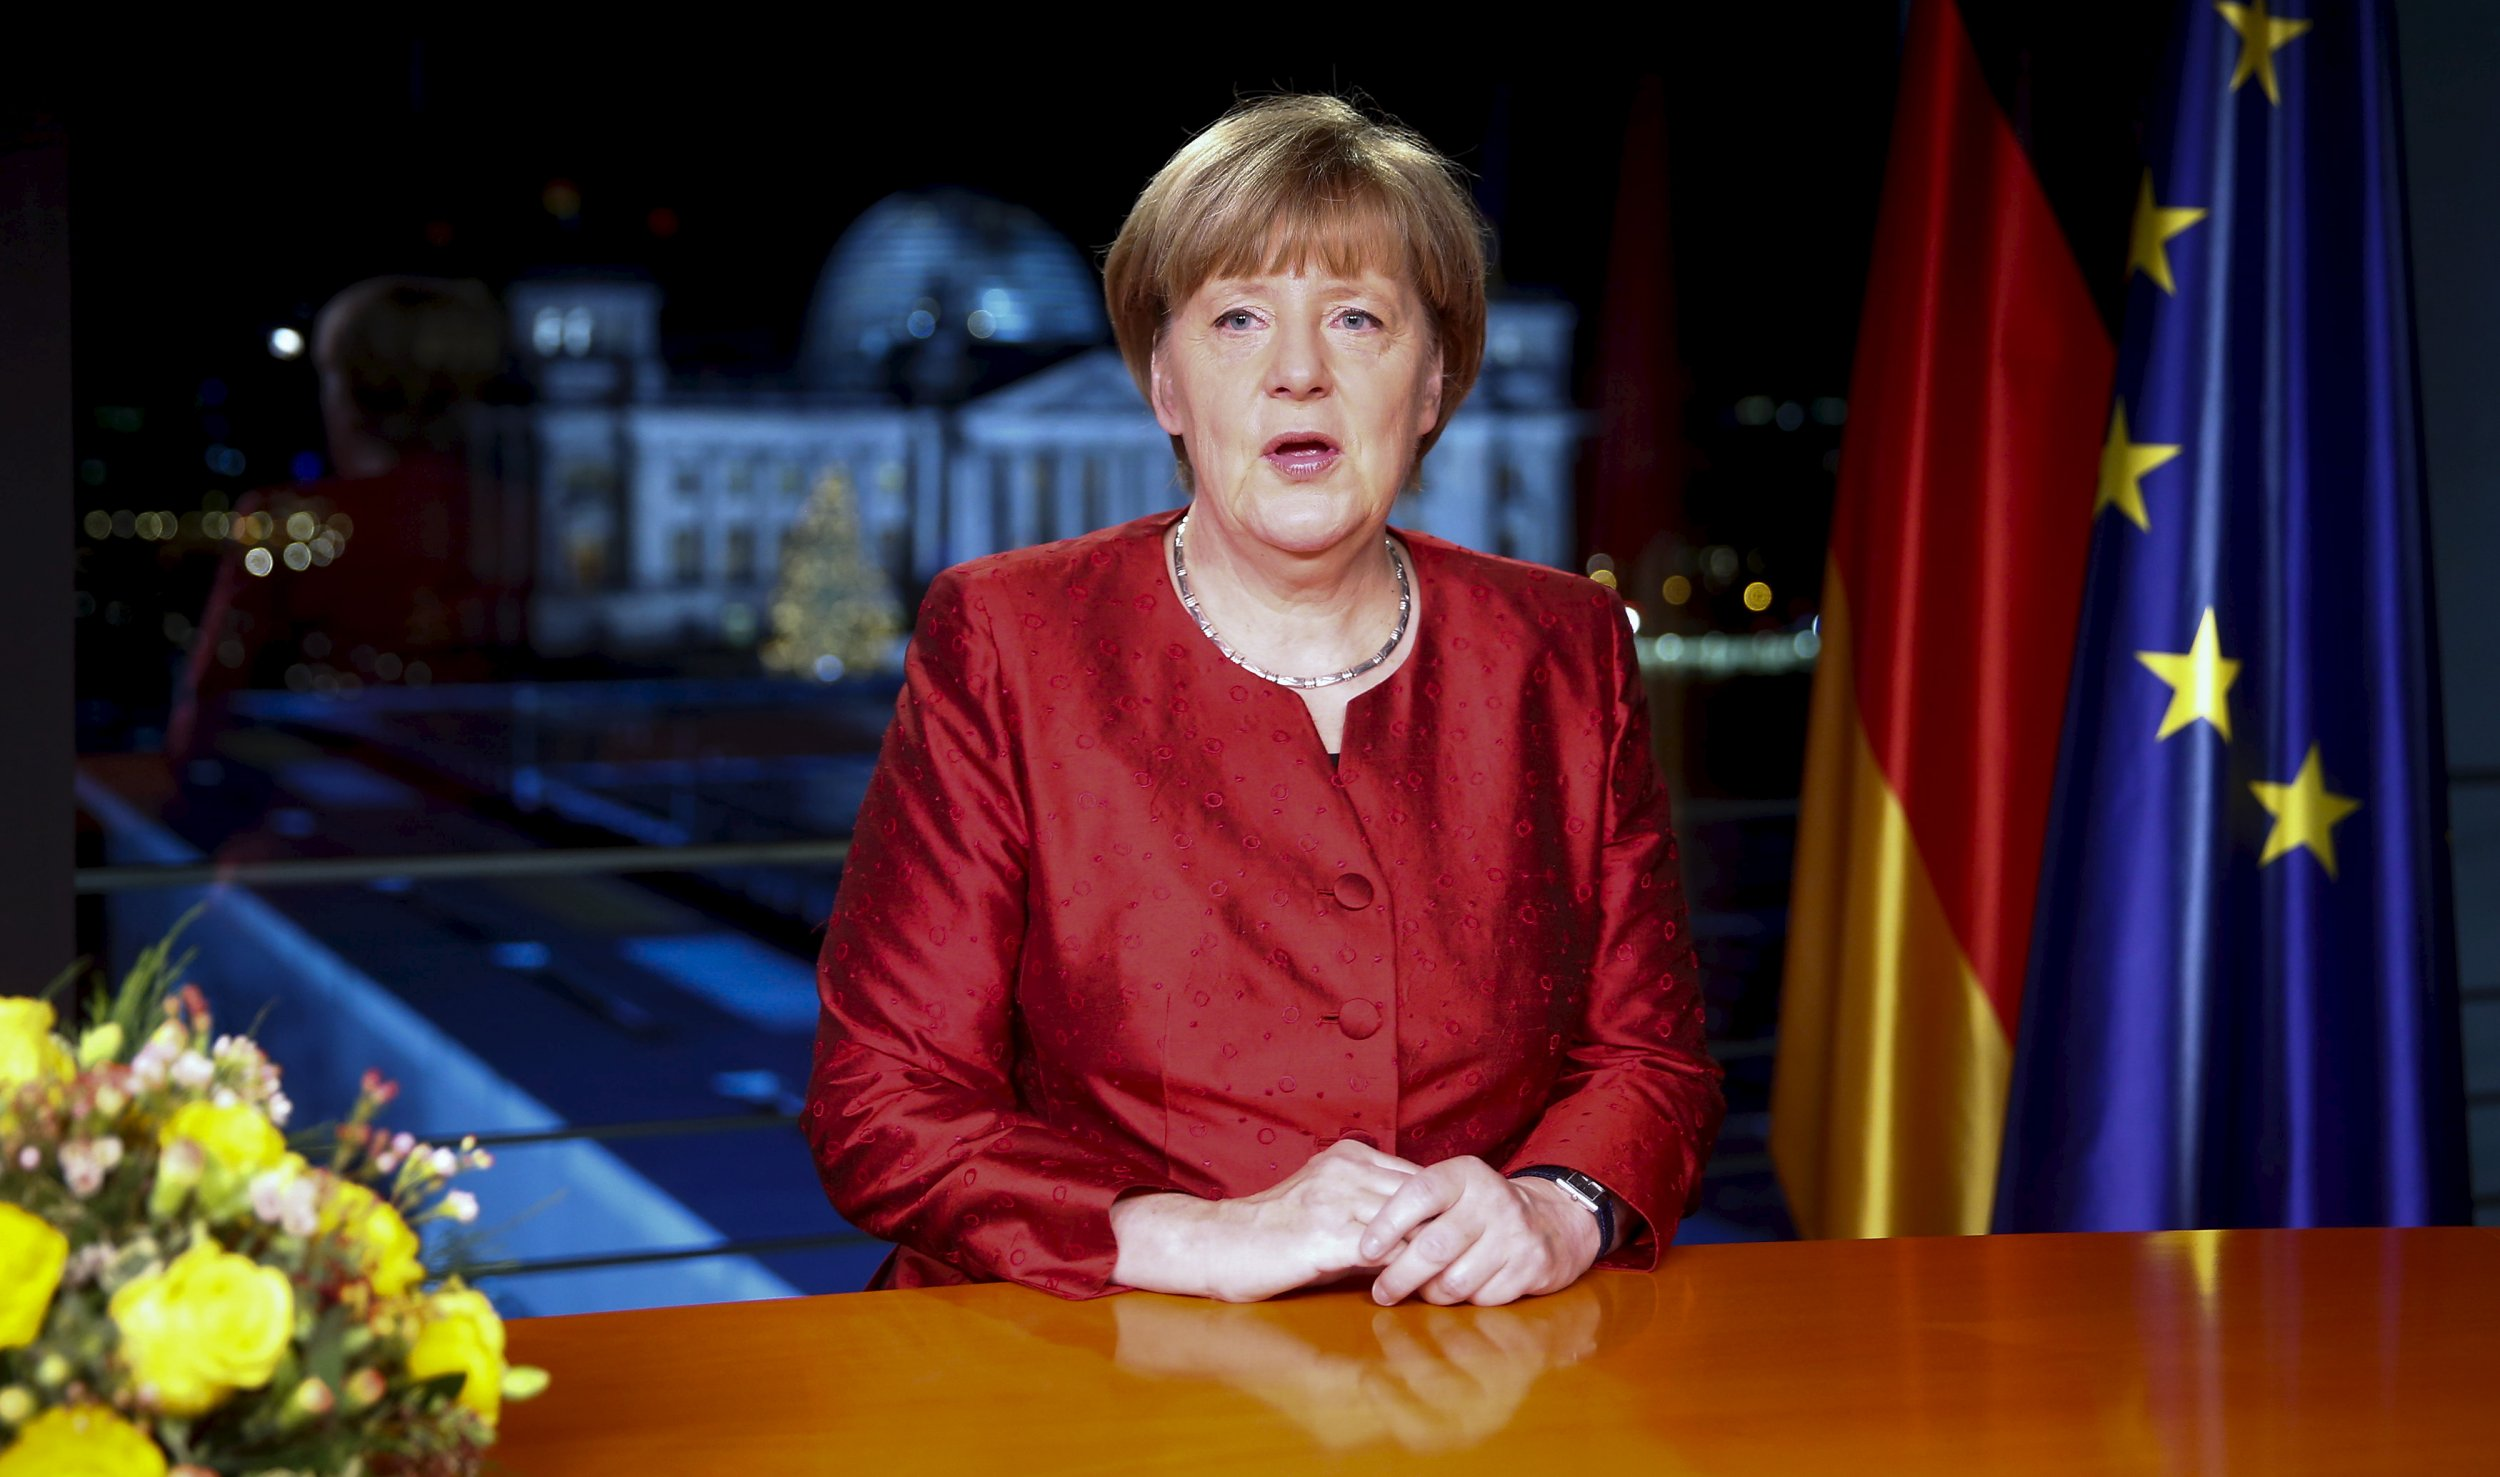 In New Year Messages  Europe s Leaders Call for Strength